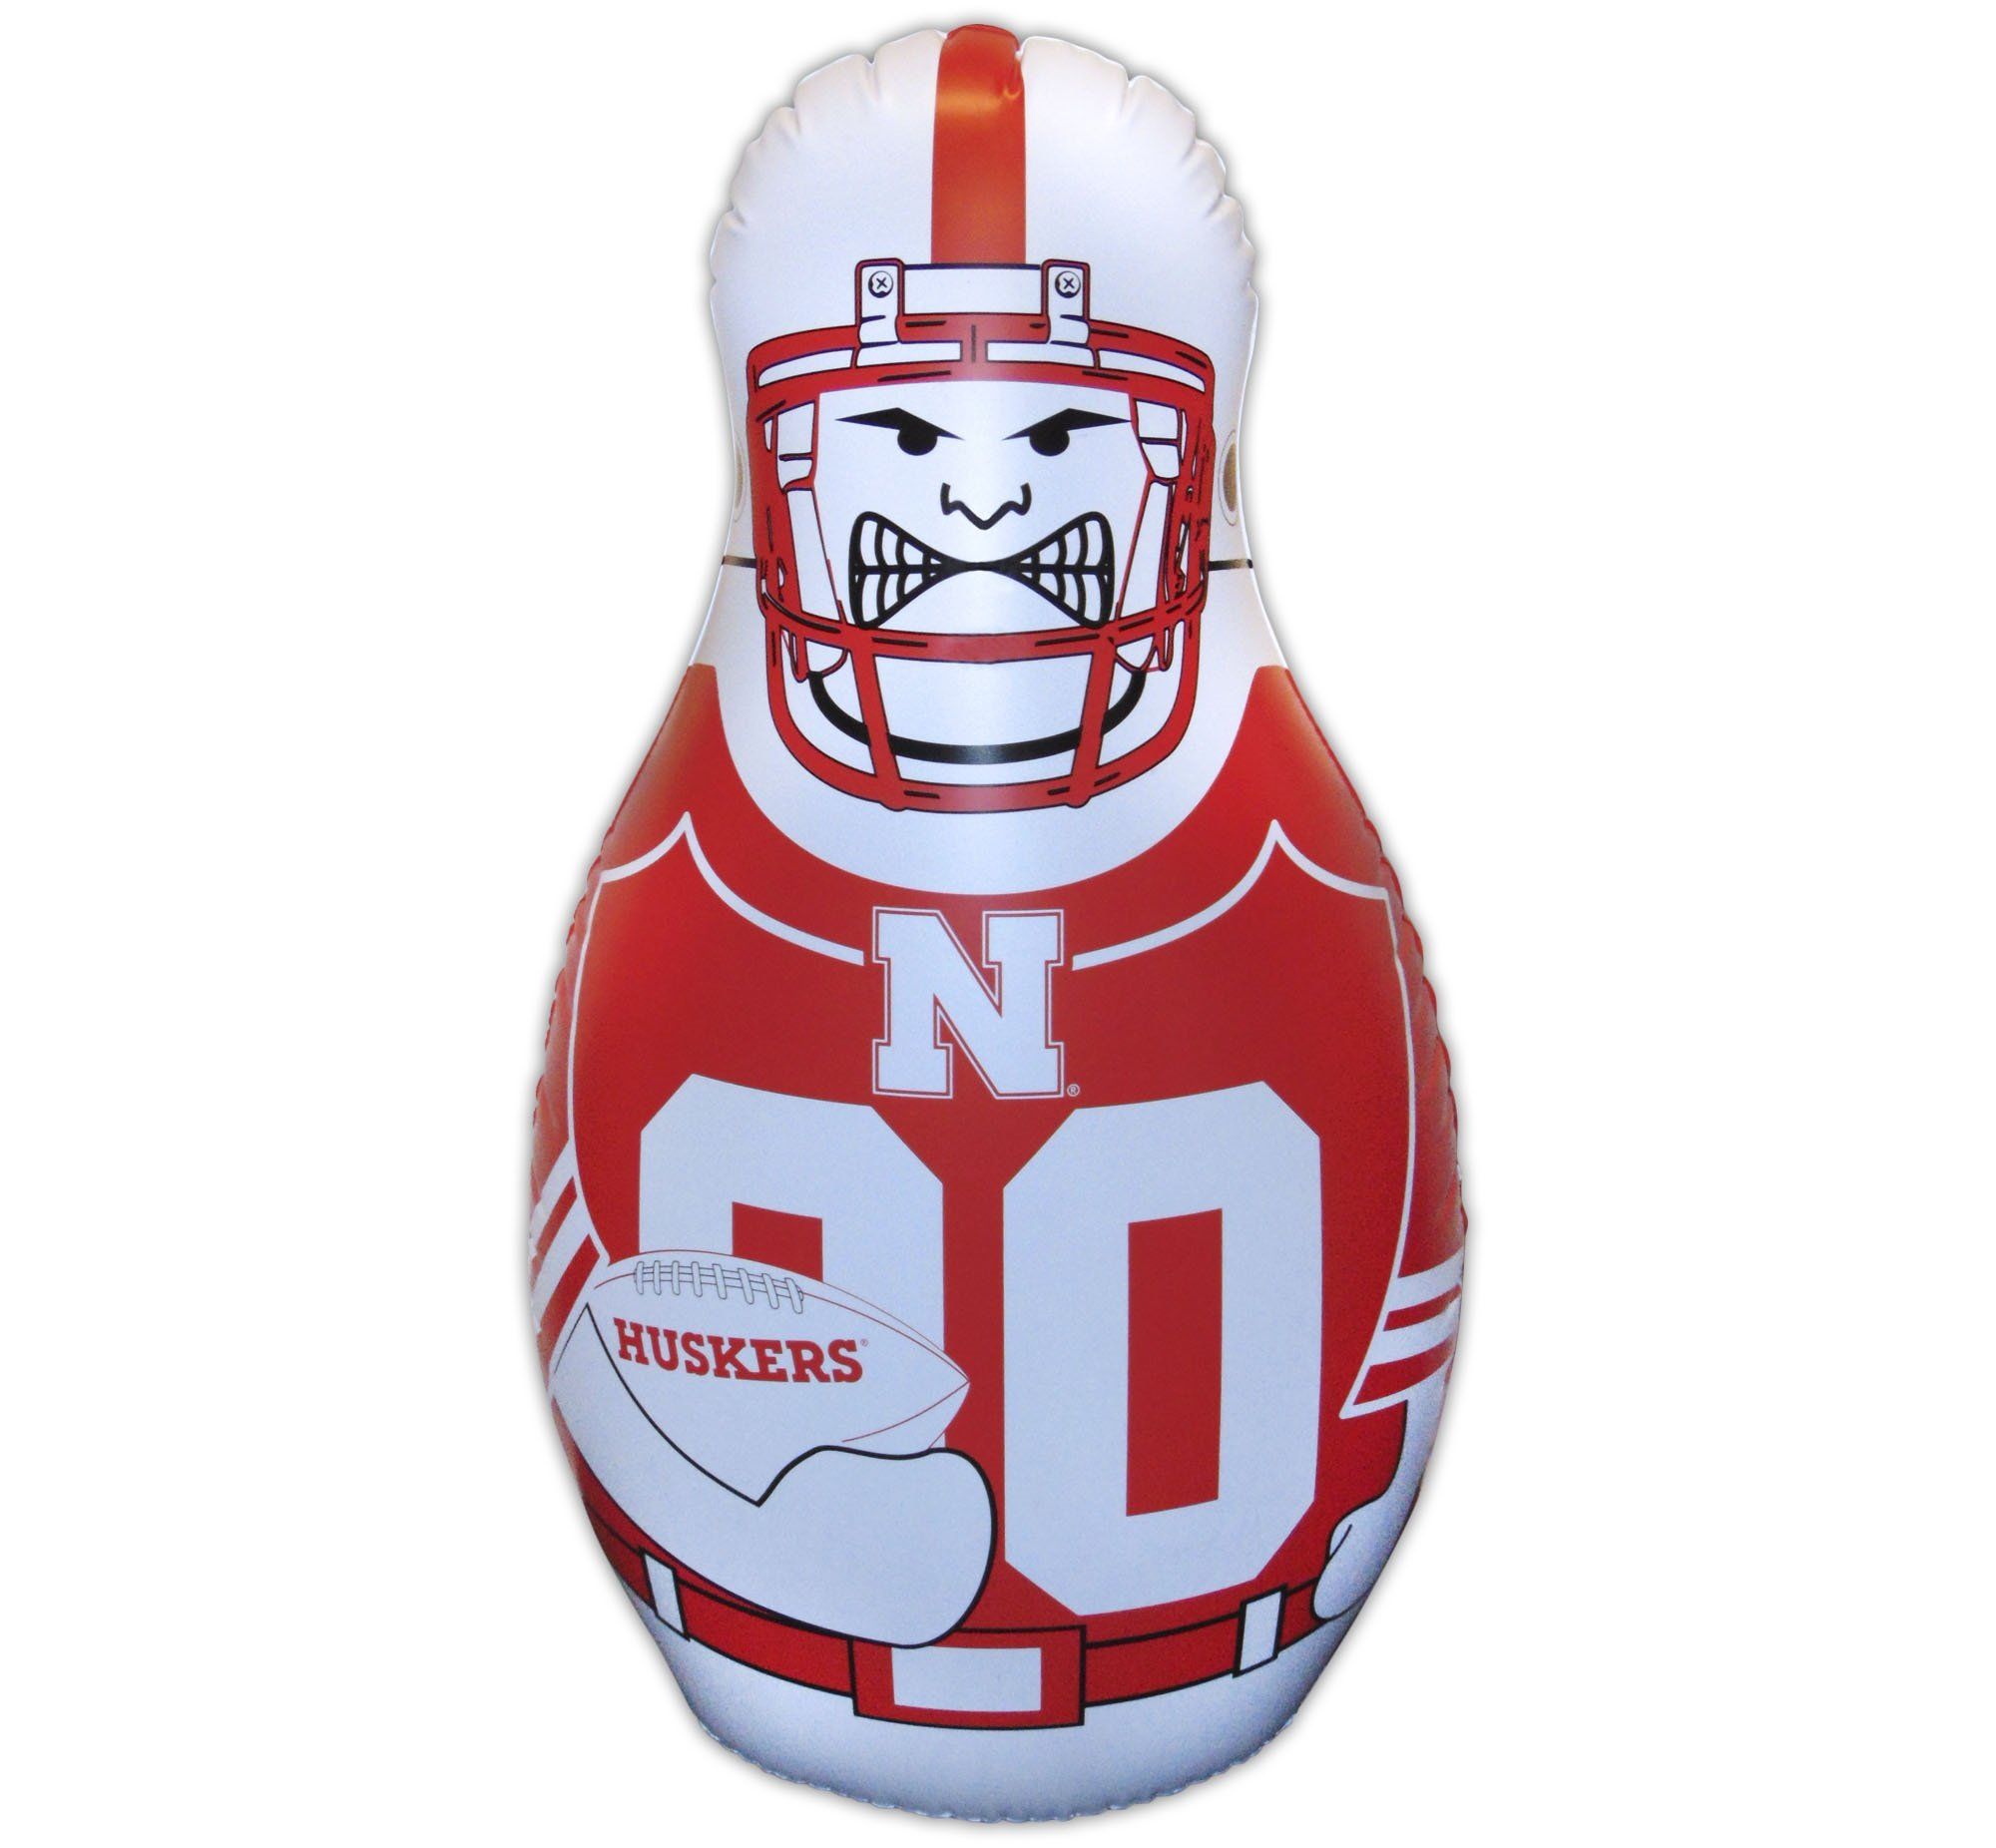 Fremont Die Nebraska Cornhuskers Tackle Buddy Bop Punching Bag